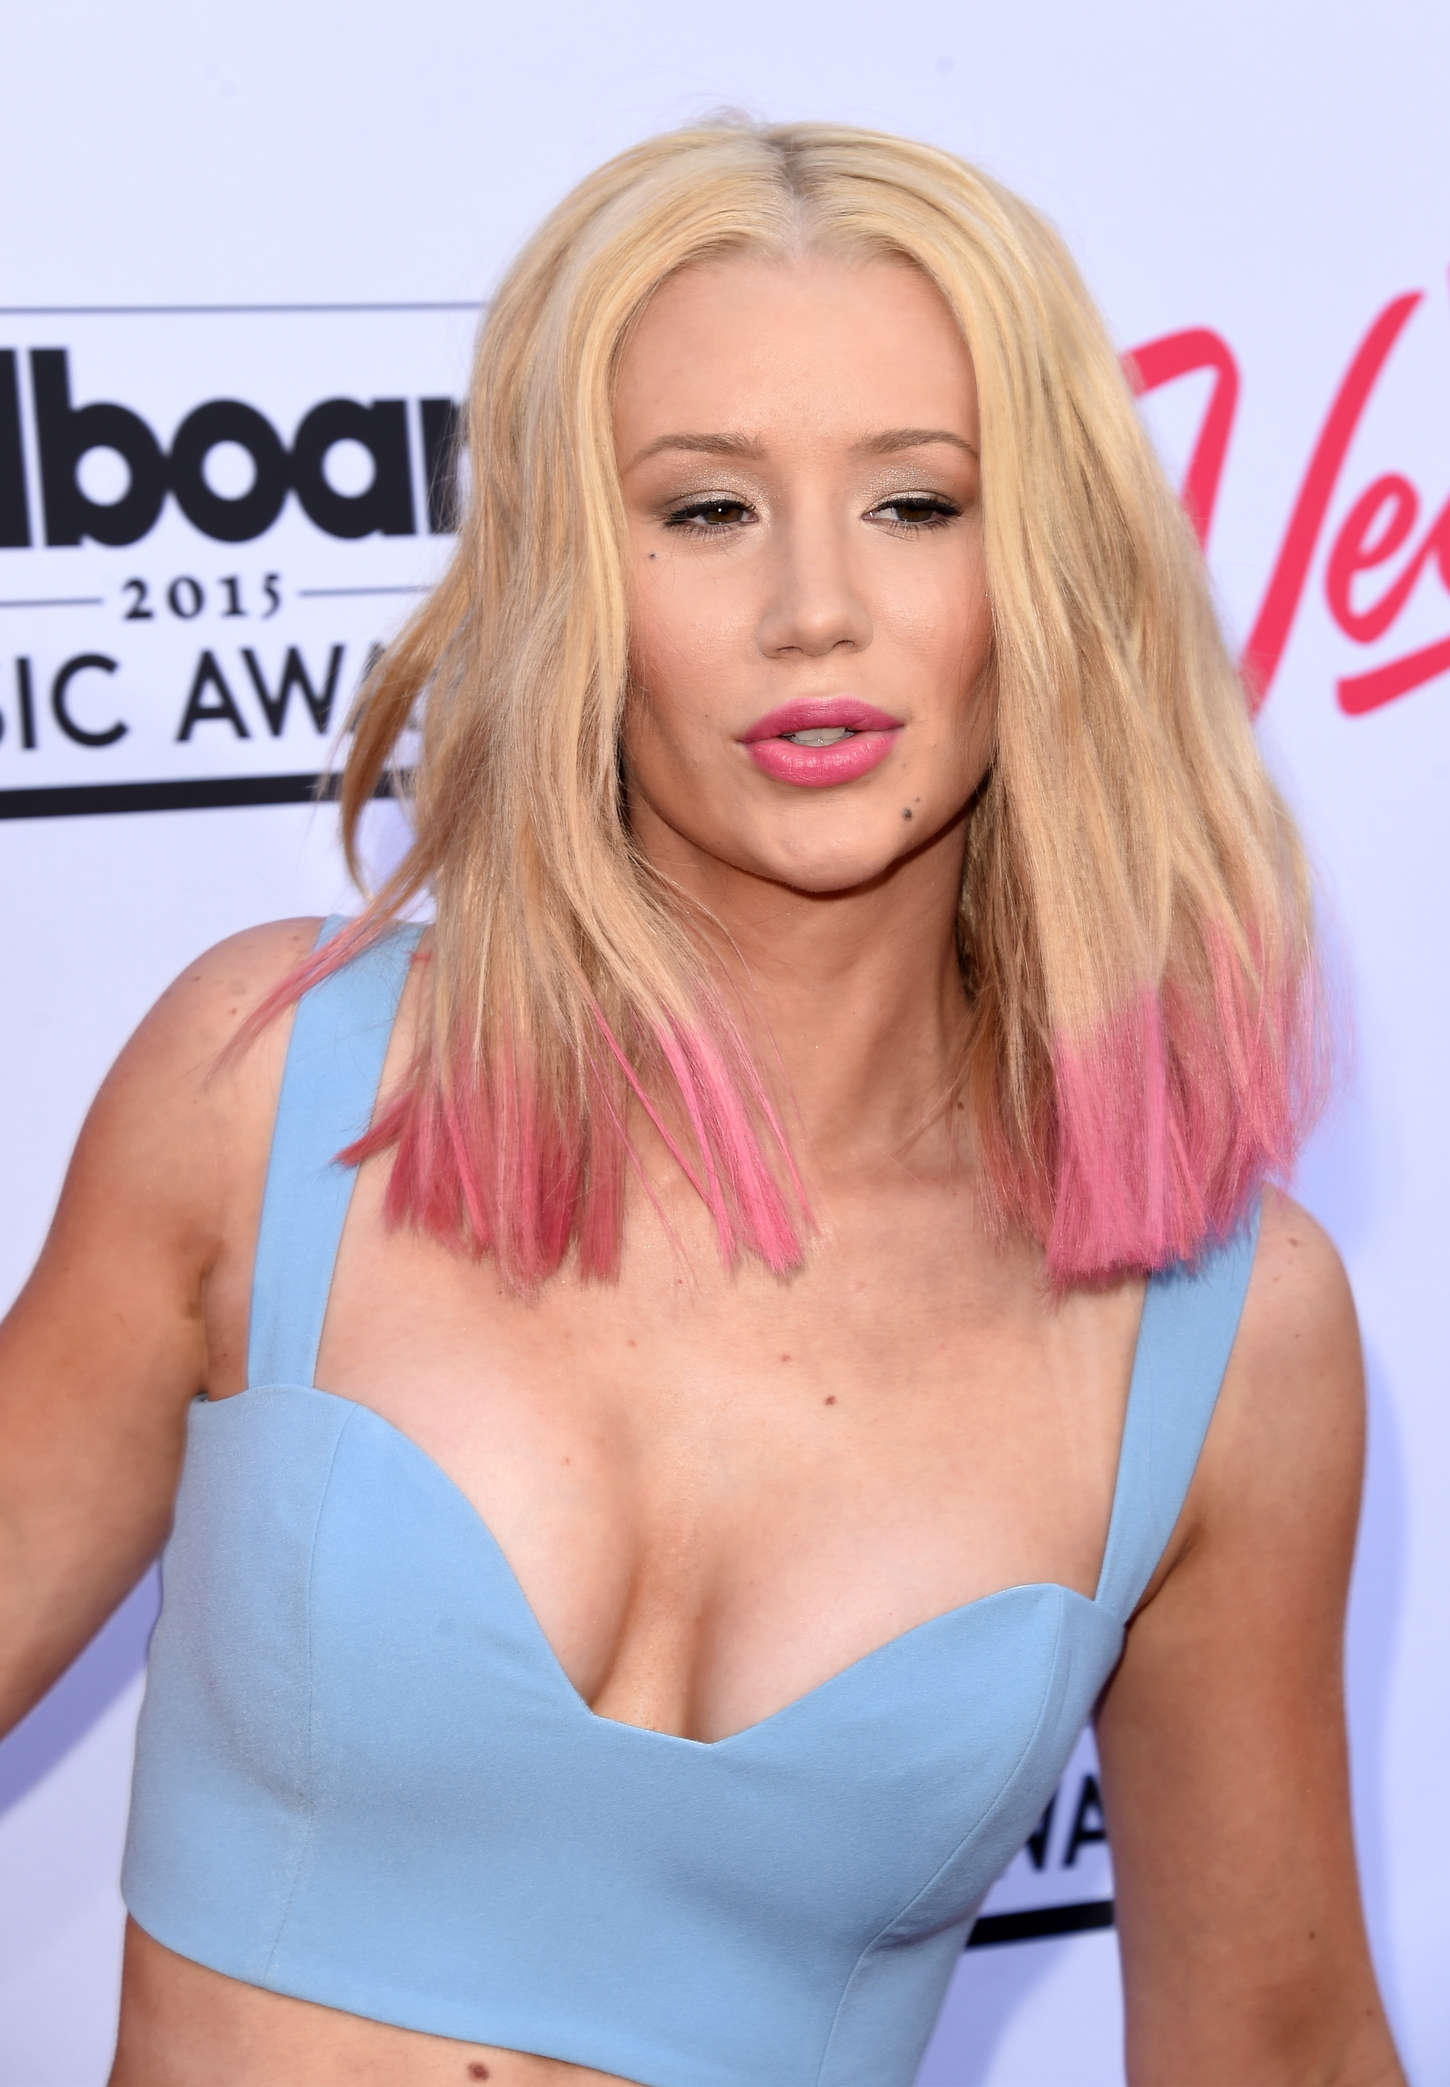 Iggy Azalea - Billboard Music Awards 2015 in Las Vegas